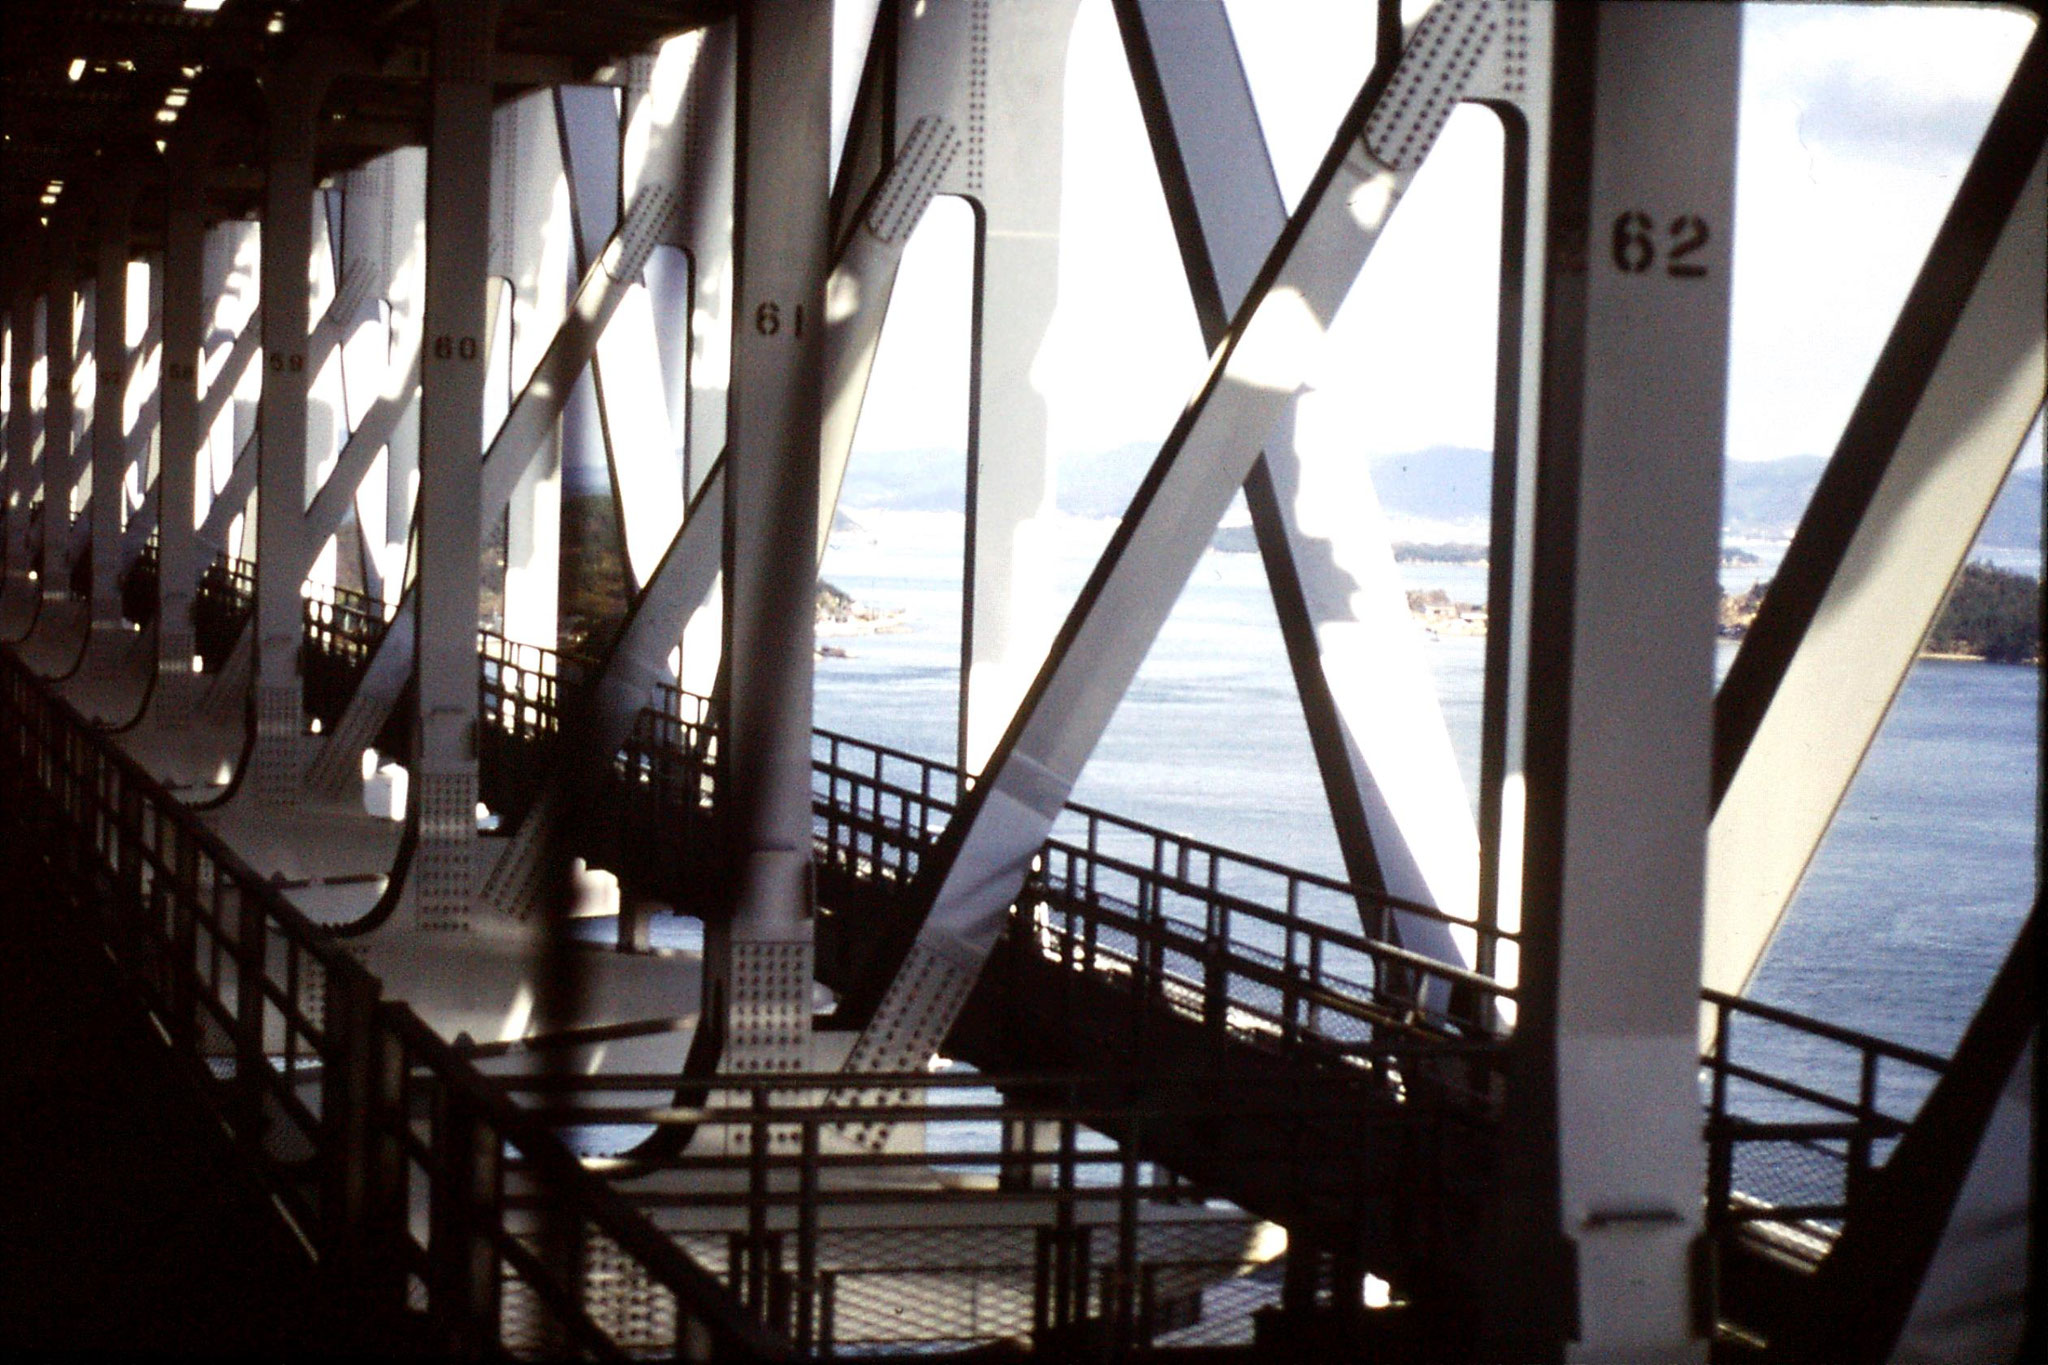 24/1/1989: 25: bridge over Seto Sea